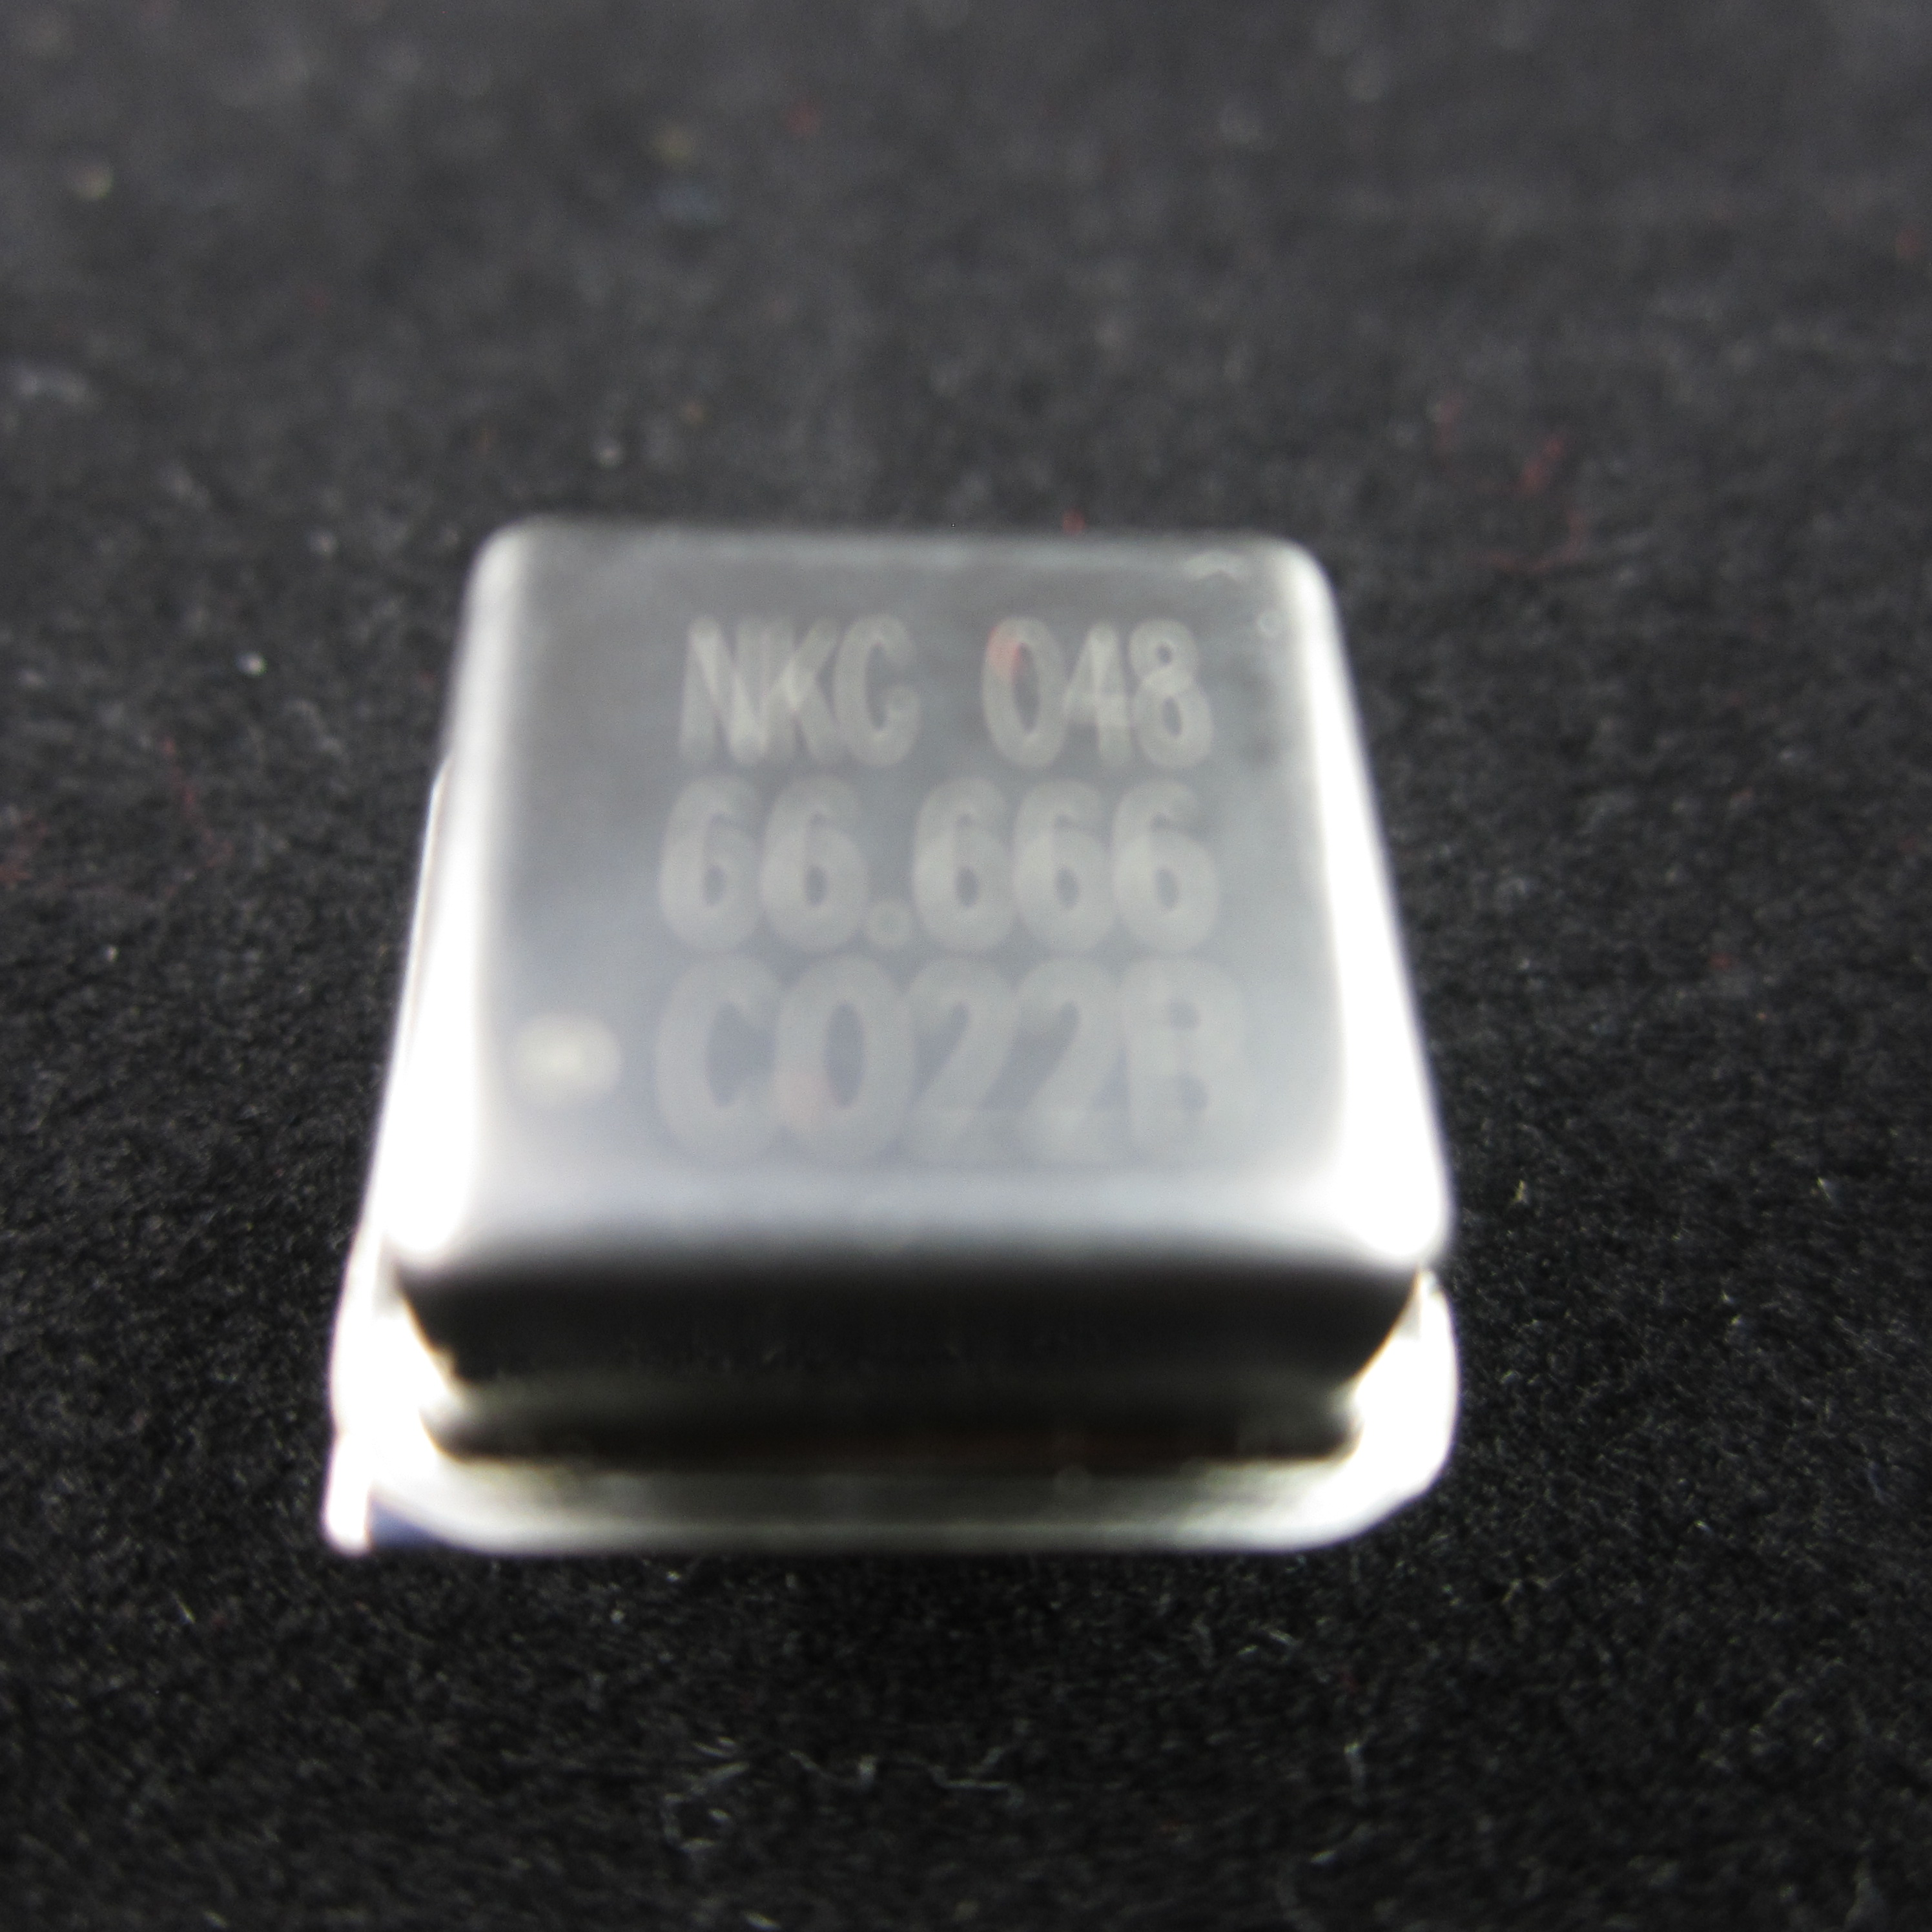 NAKAGAWA ELECTRONICS LIMITED             CO22B66.6660NNS